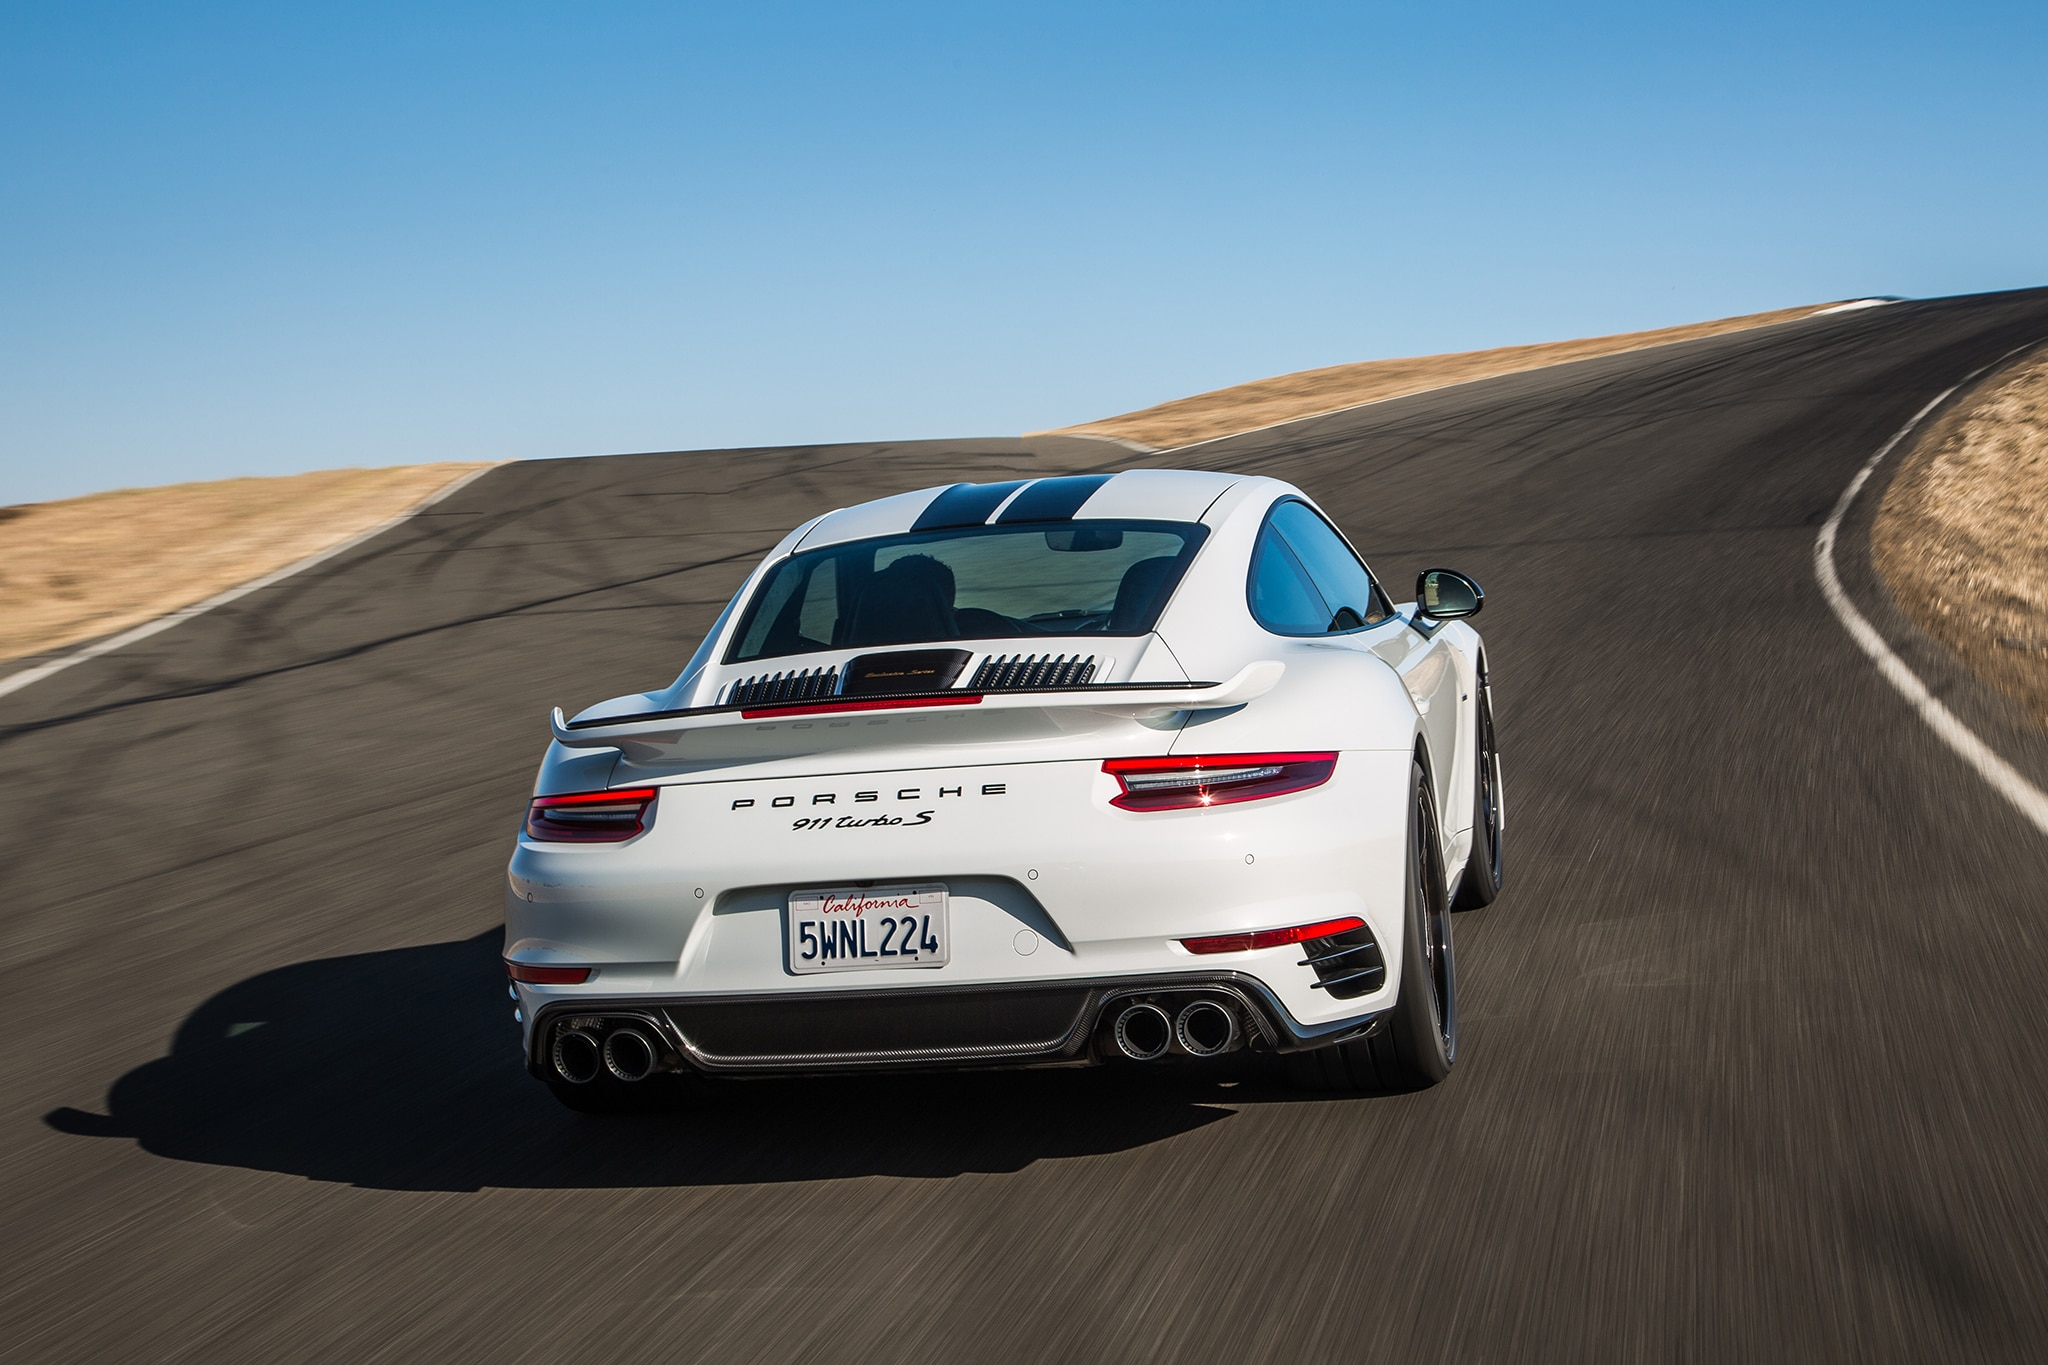 2018 Porsche 911 Turbo S Exclusive Rear View In Motion 01